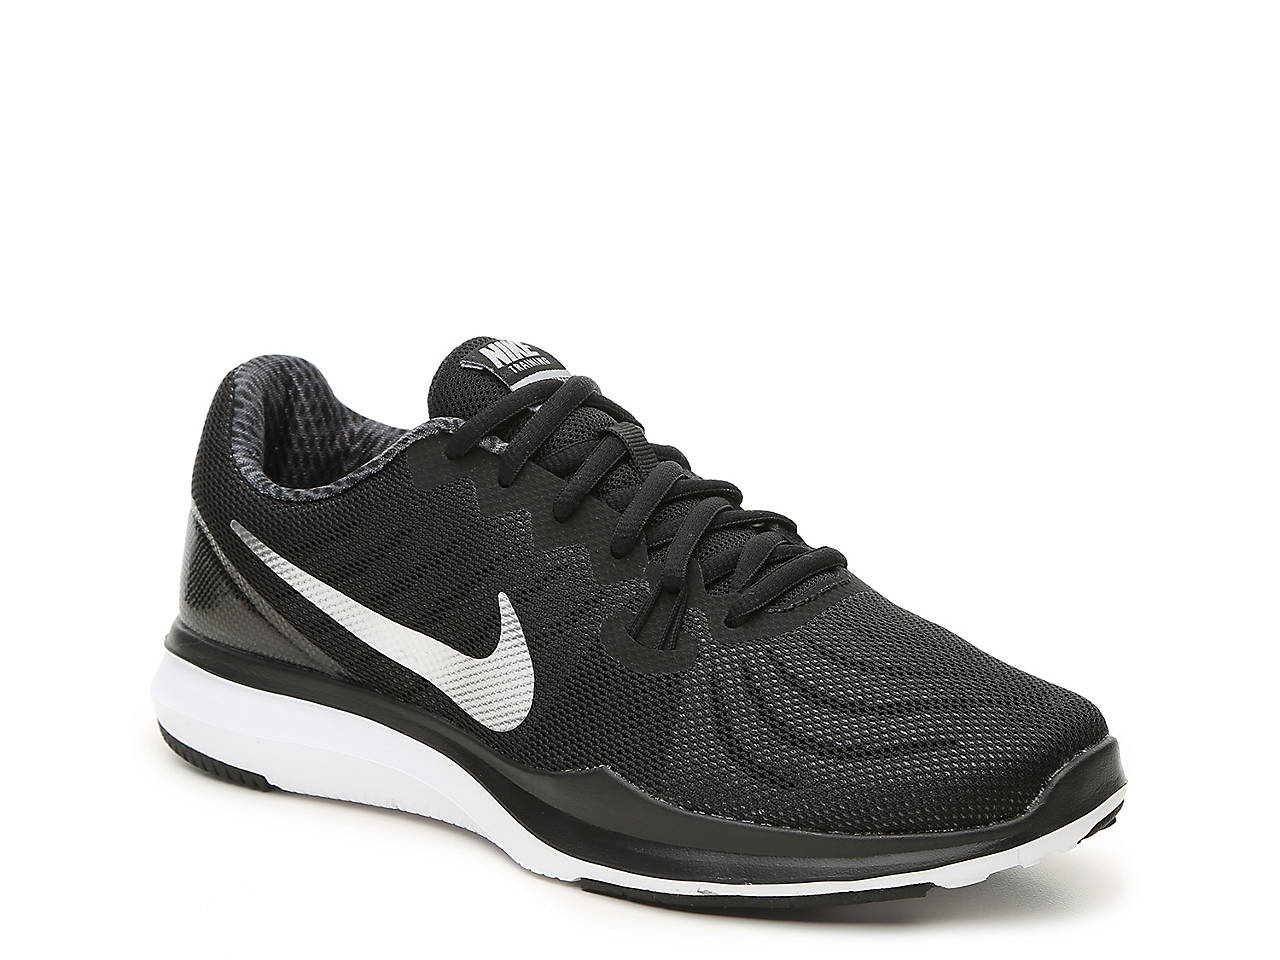 discount shopping online 100% original cheap price Nike In-Season 8 TR Women's ... Cross Training Shoes jWAKV